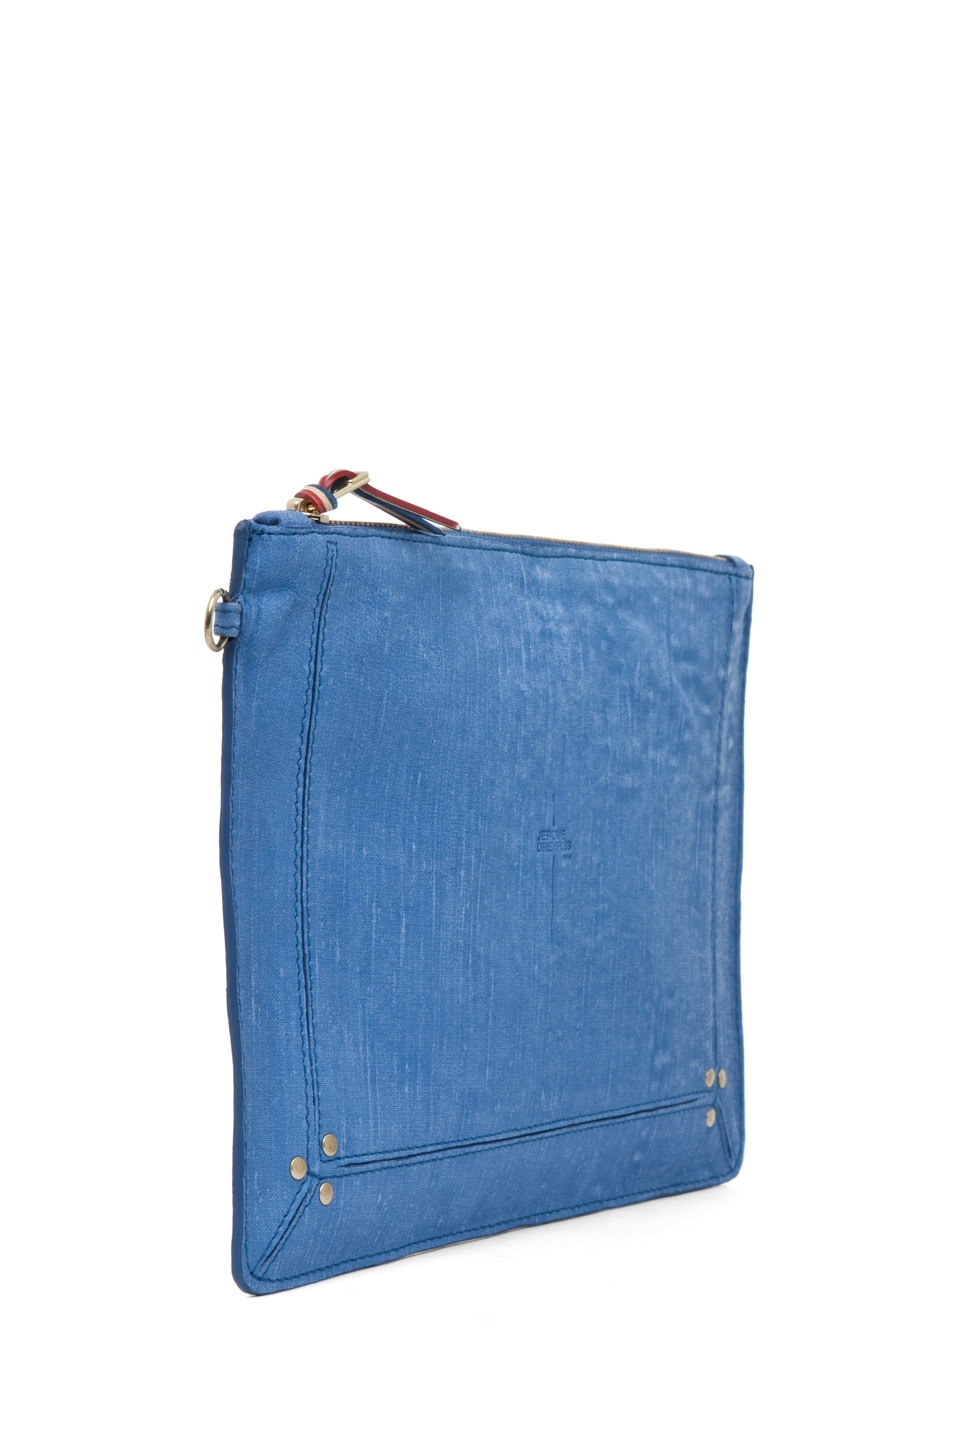 Image 3 of Jerome Dreyfuss Large Popoche Clutch in Denim Bleu